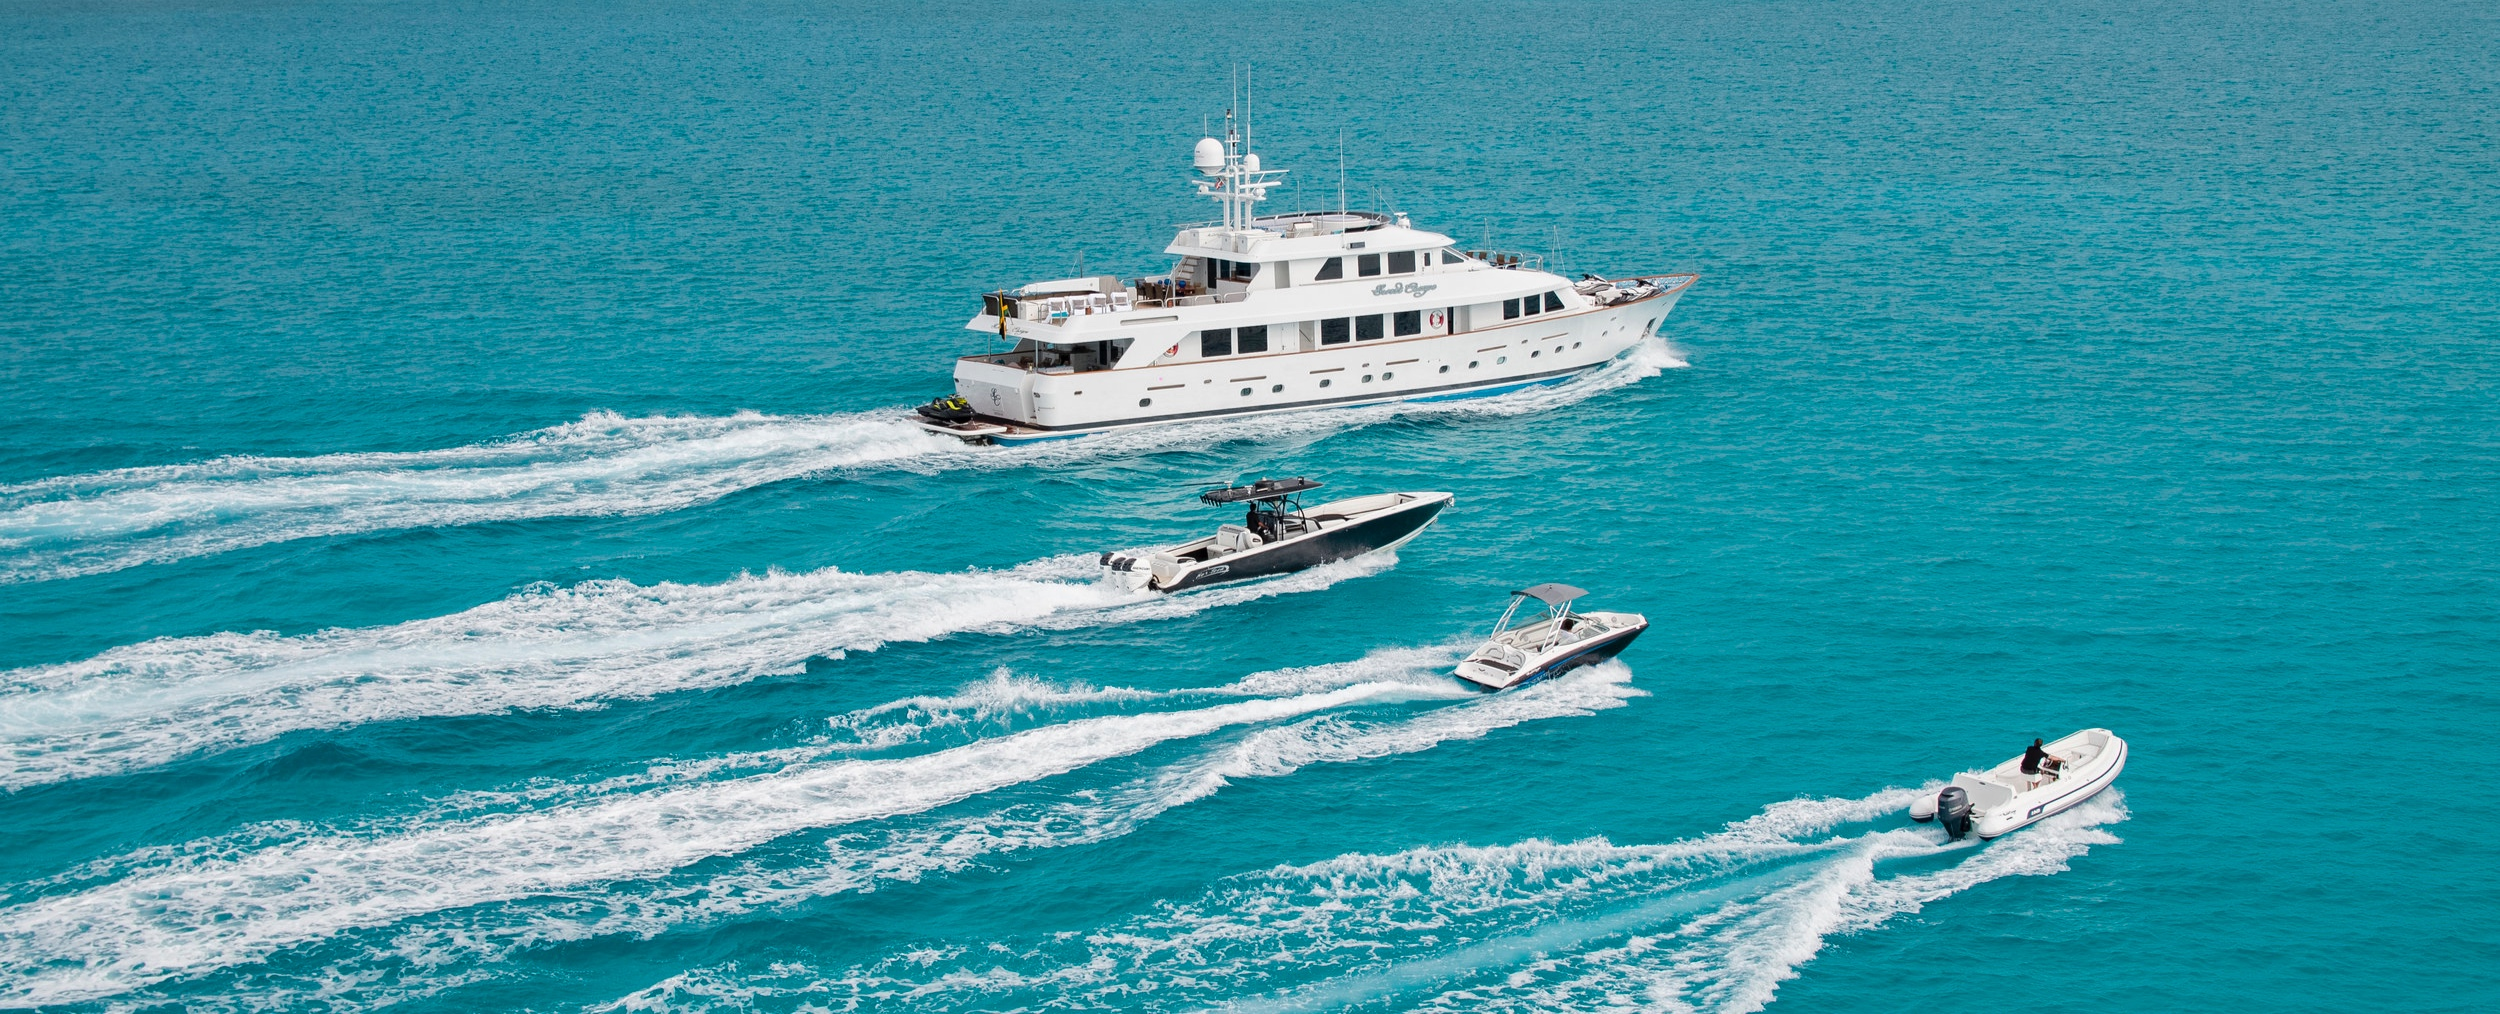 yacht-sweet-escape-tenders-in-tow-charter-toys-nortech-AB-AR190